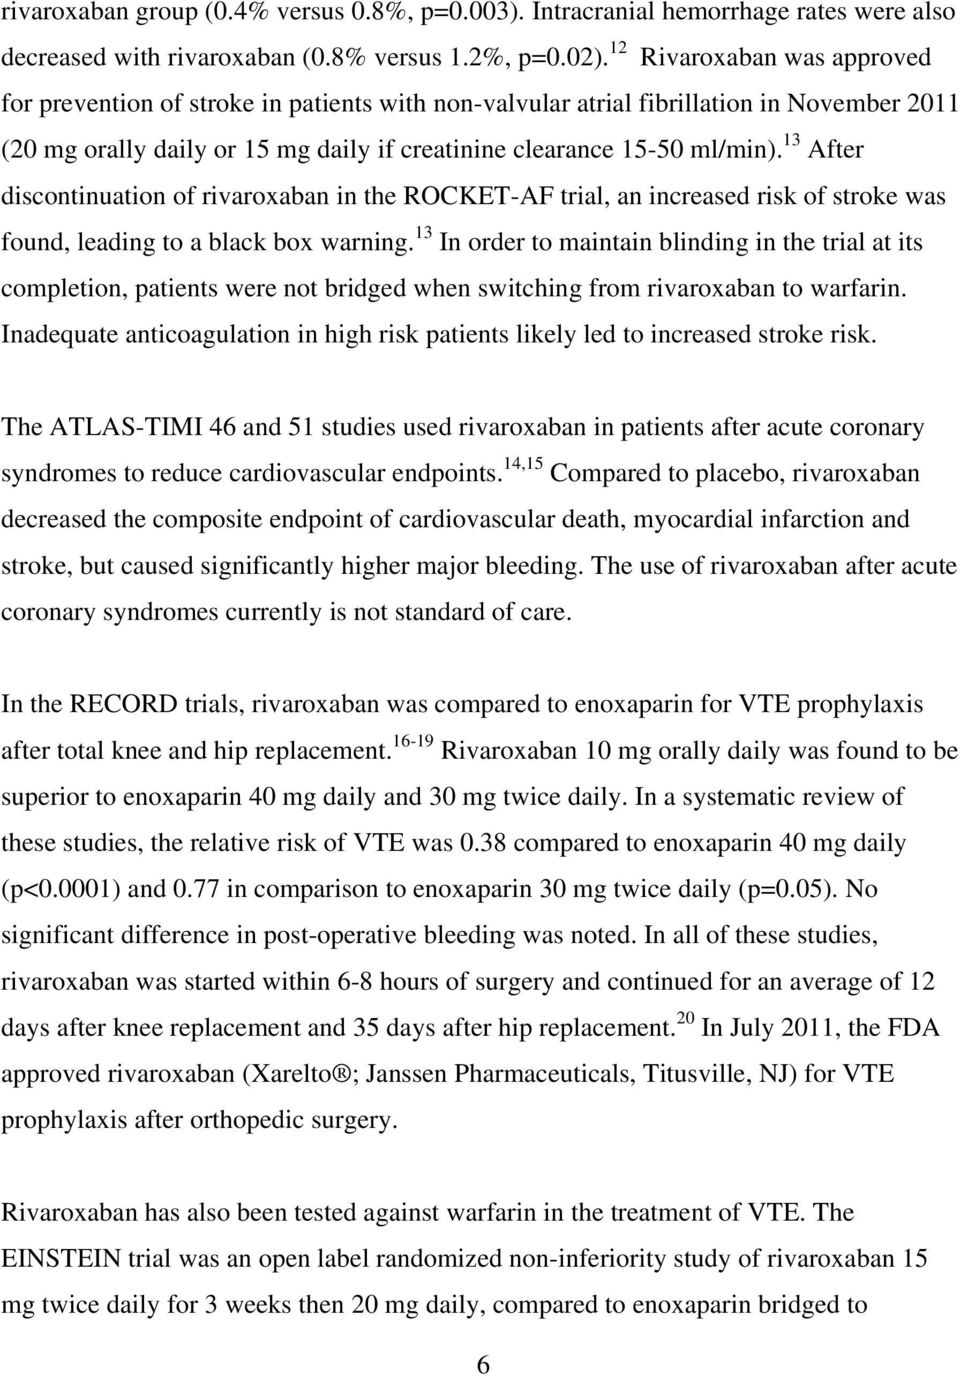 13 After discontinuation of rivaroxaban in the ROCKET-AF trial, an increased risk of stroke was found, leading to a black box warning.